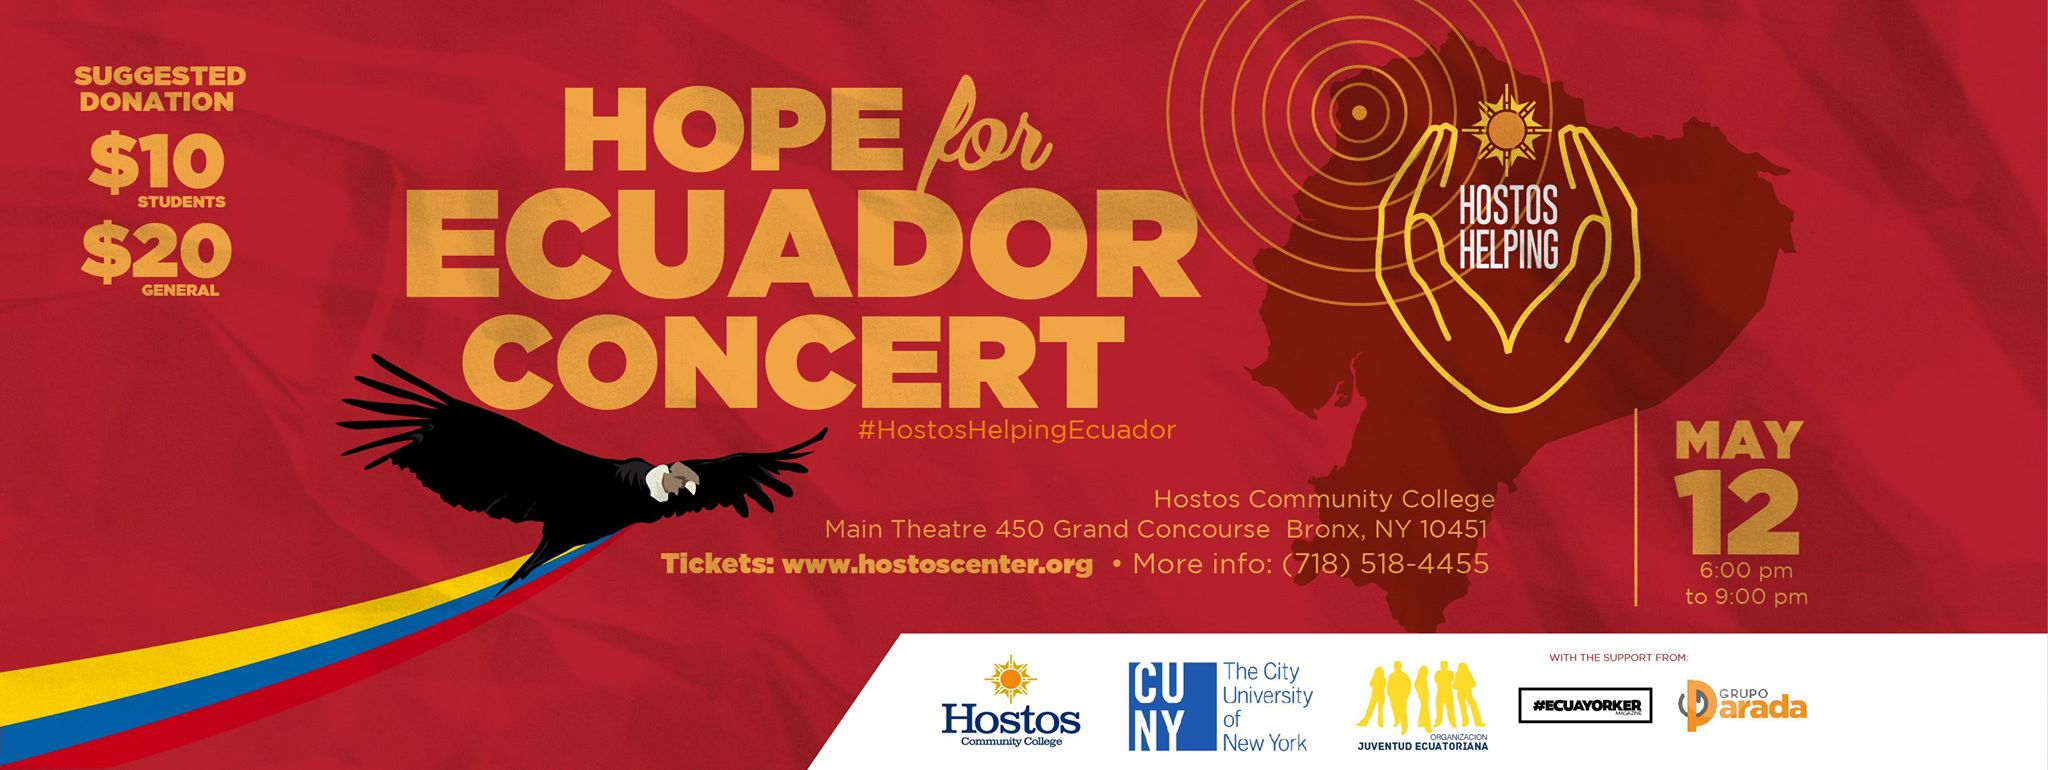 Hope for Ecuador - Concert